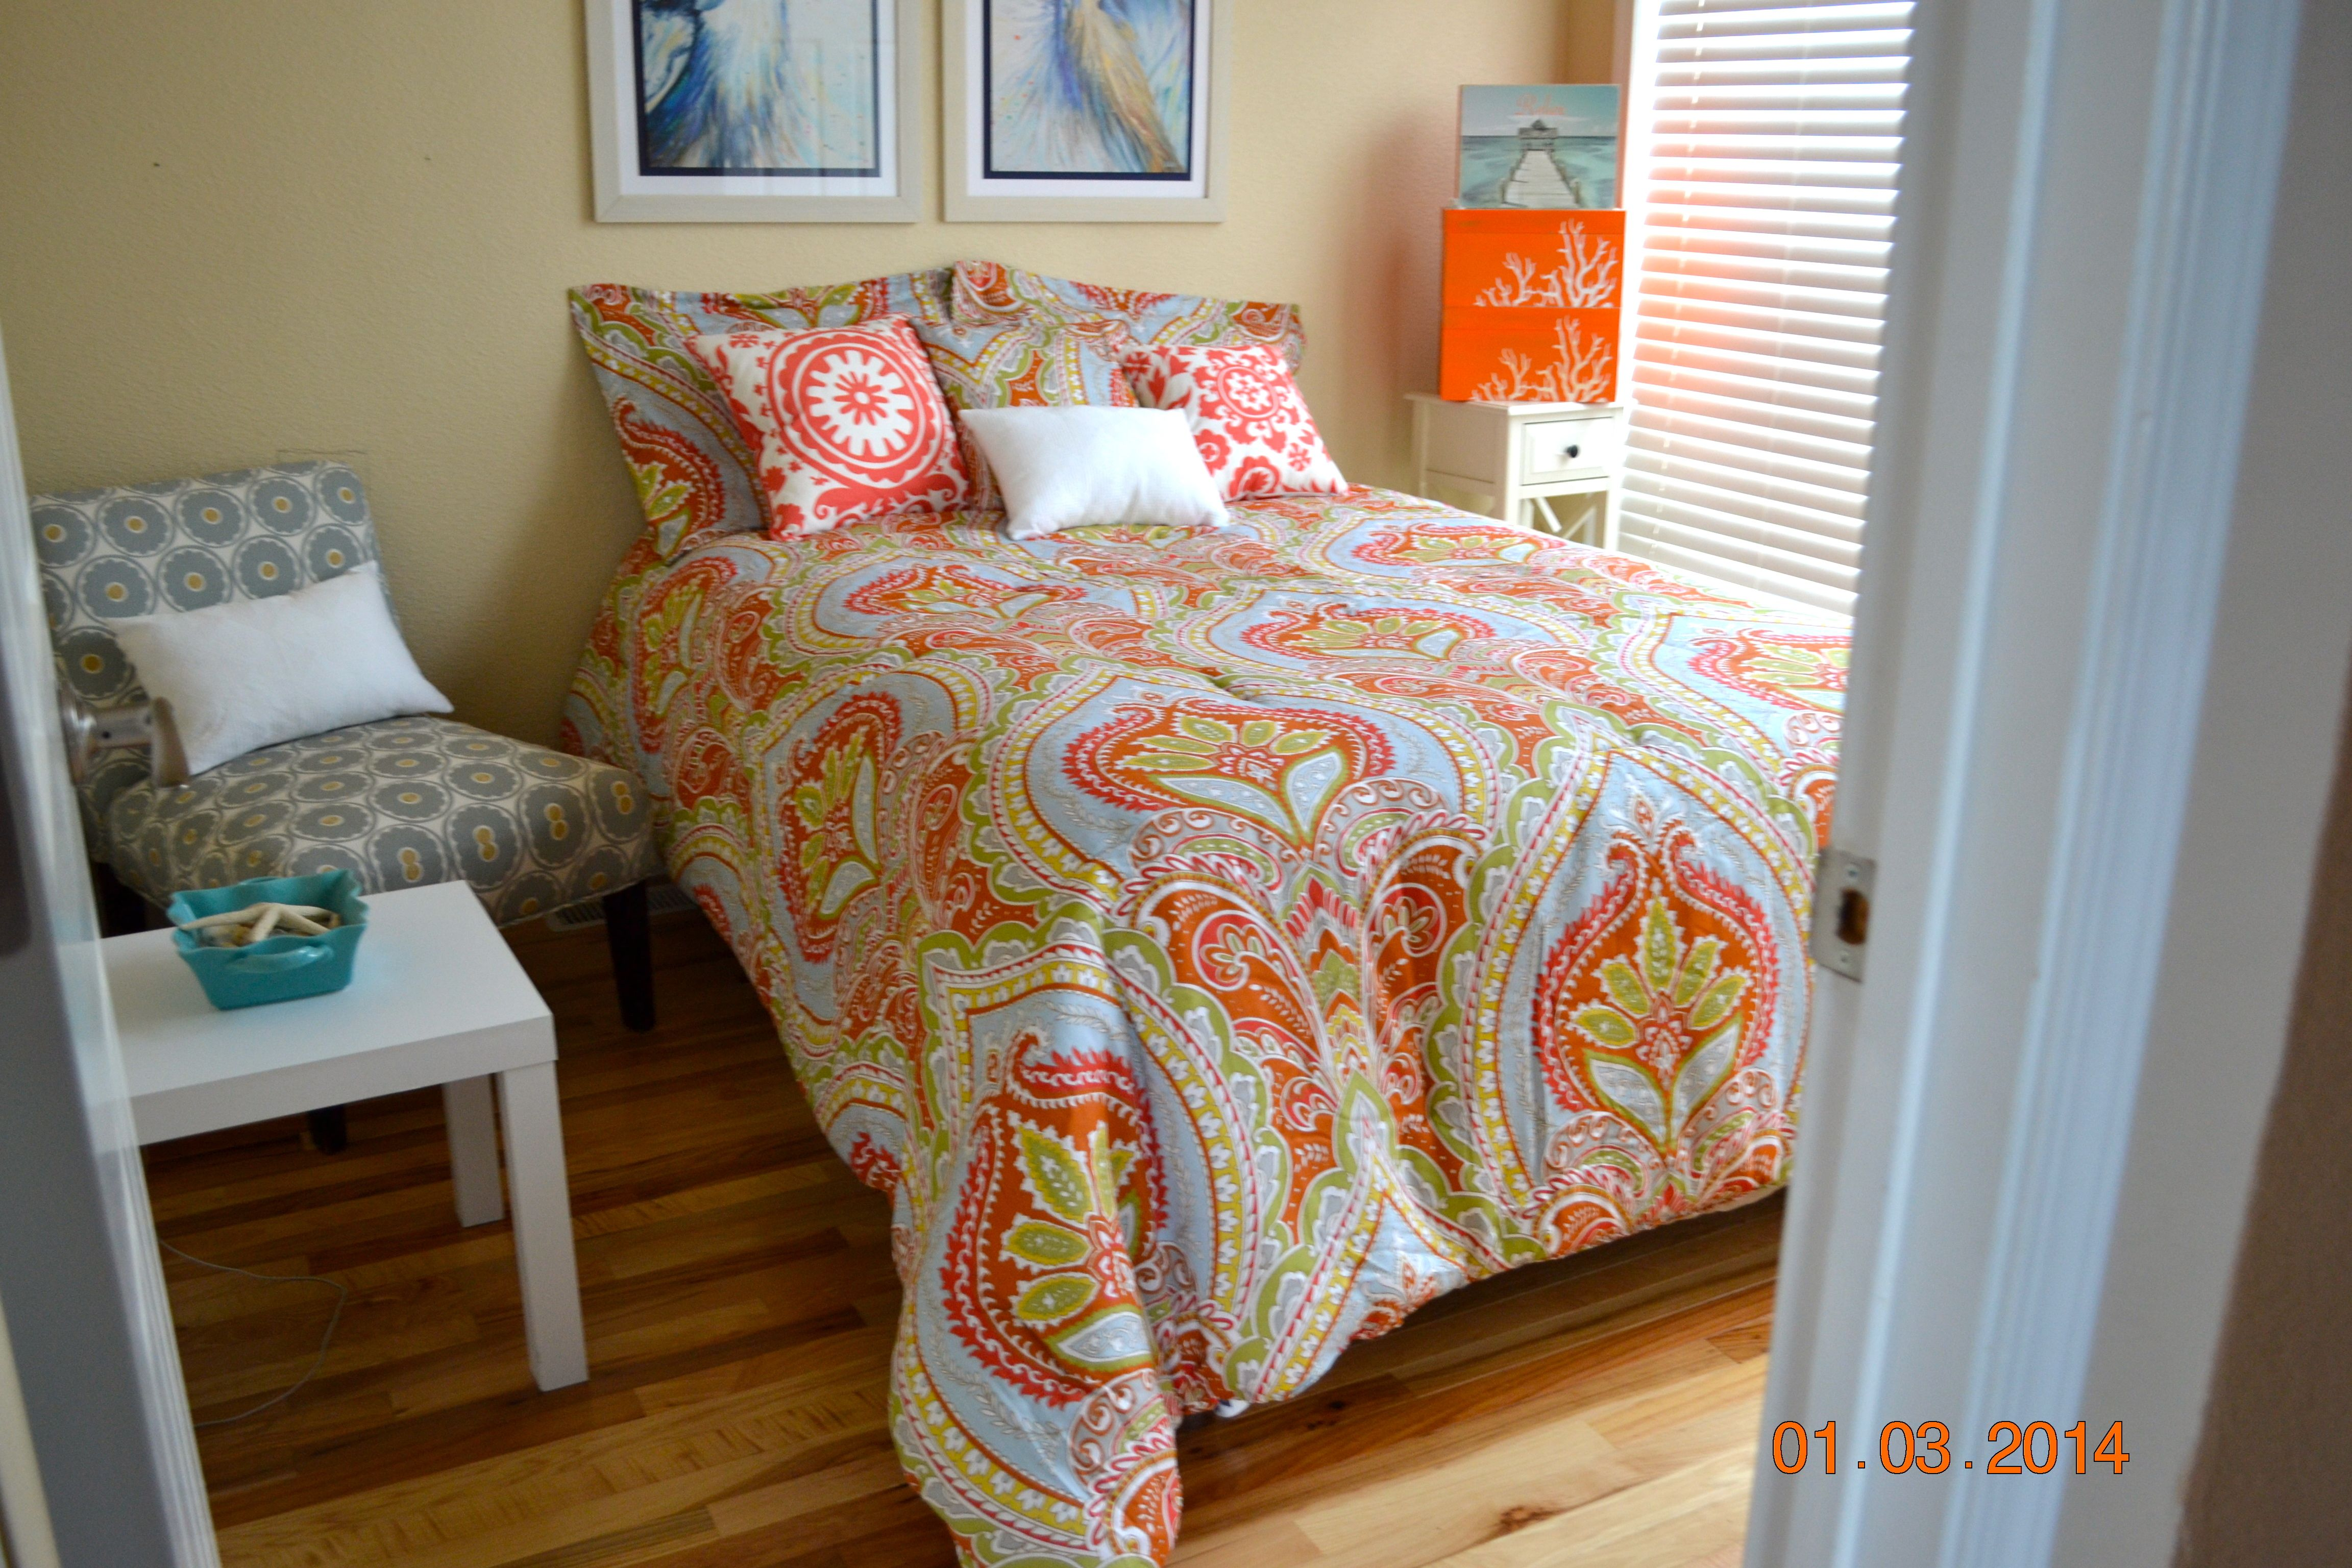 Decorated a colorful bedroom from things bought at home goods.